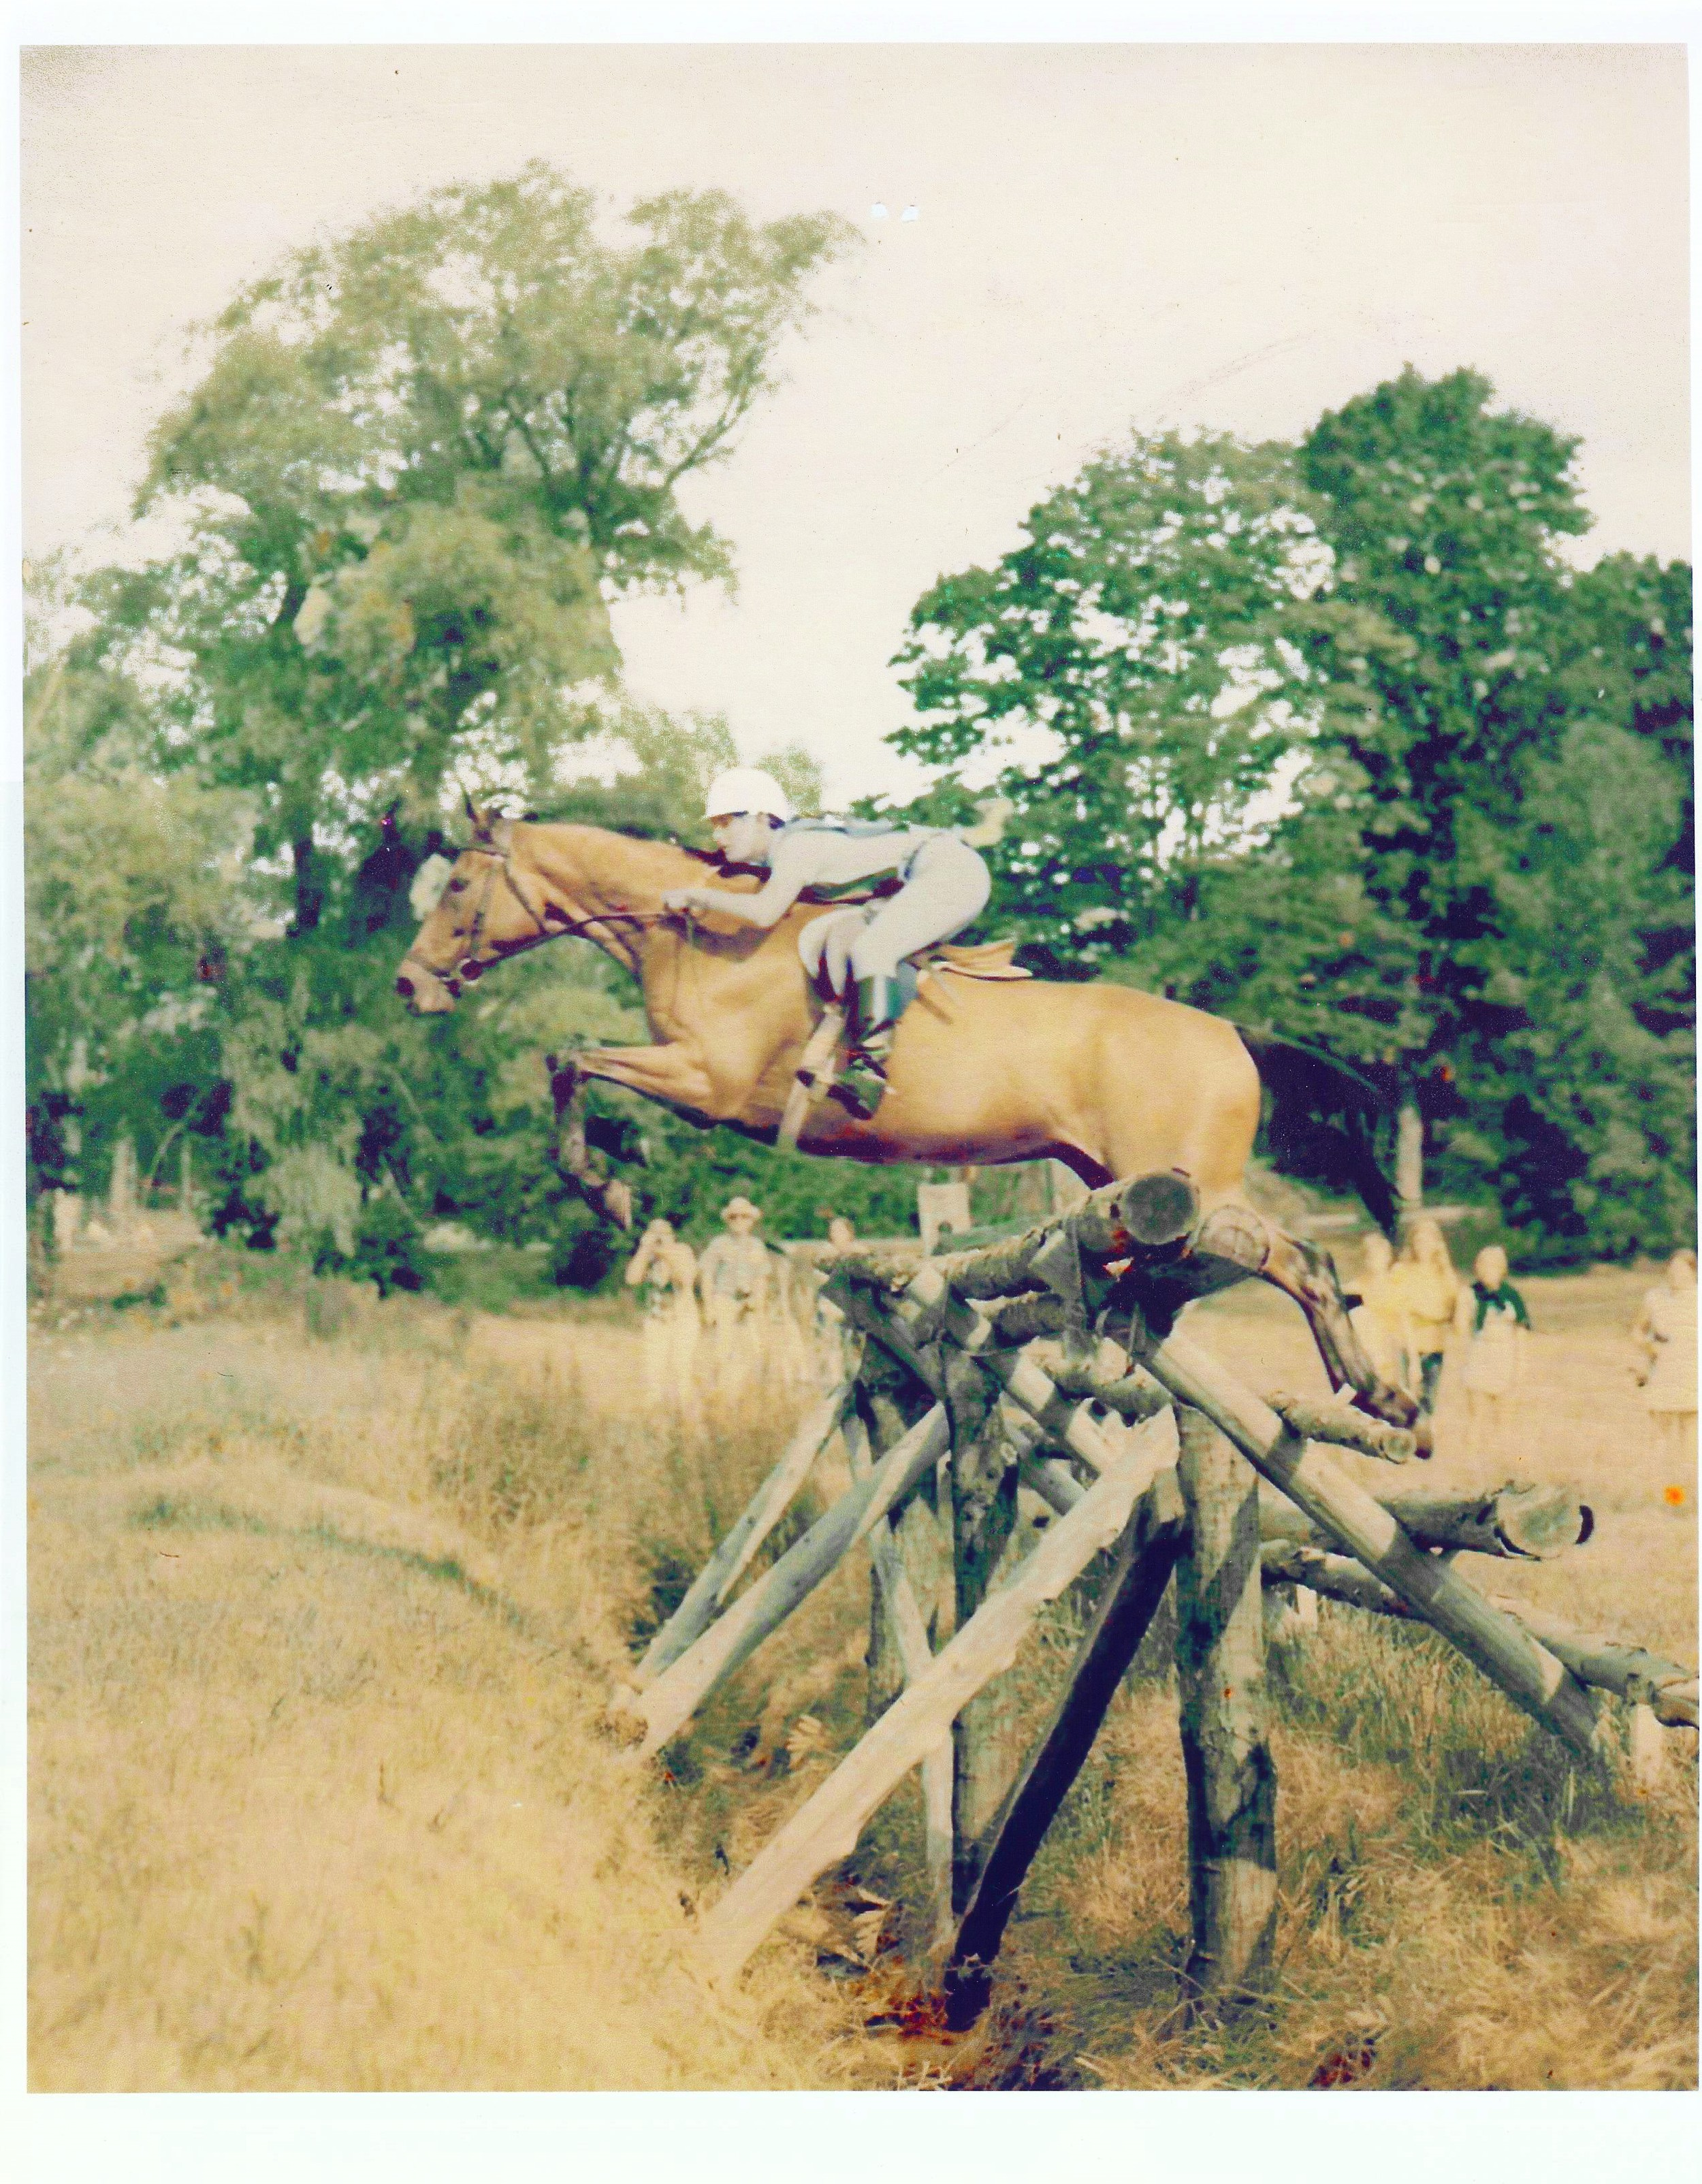 """Riding General Wing's horse Fleet Thing, 1972, """"A"""" National USPC Rally, Ledyard, MA?"""